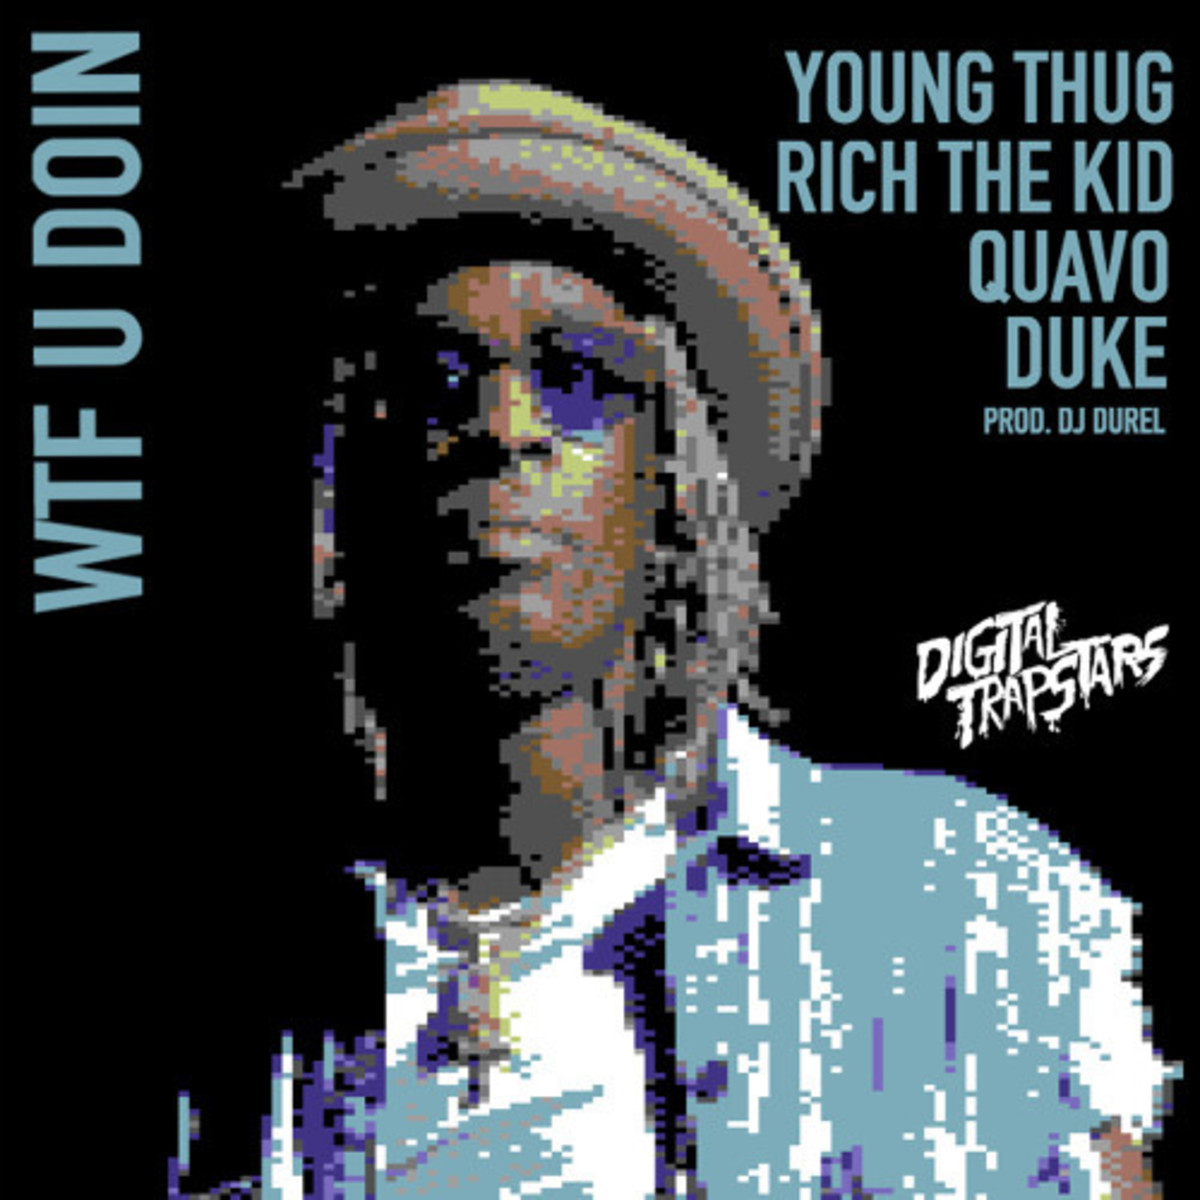 young-thug-wtf-you-doin-1.jpg